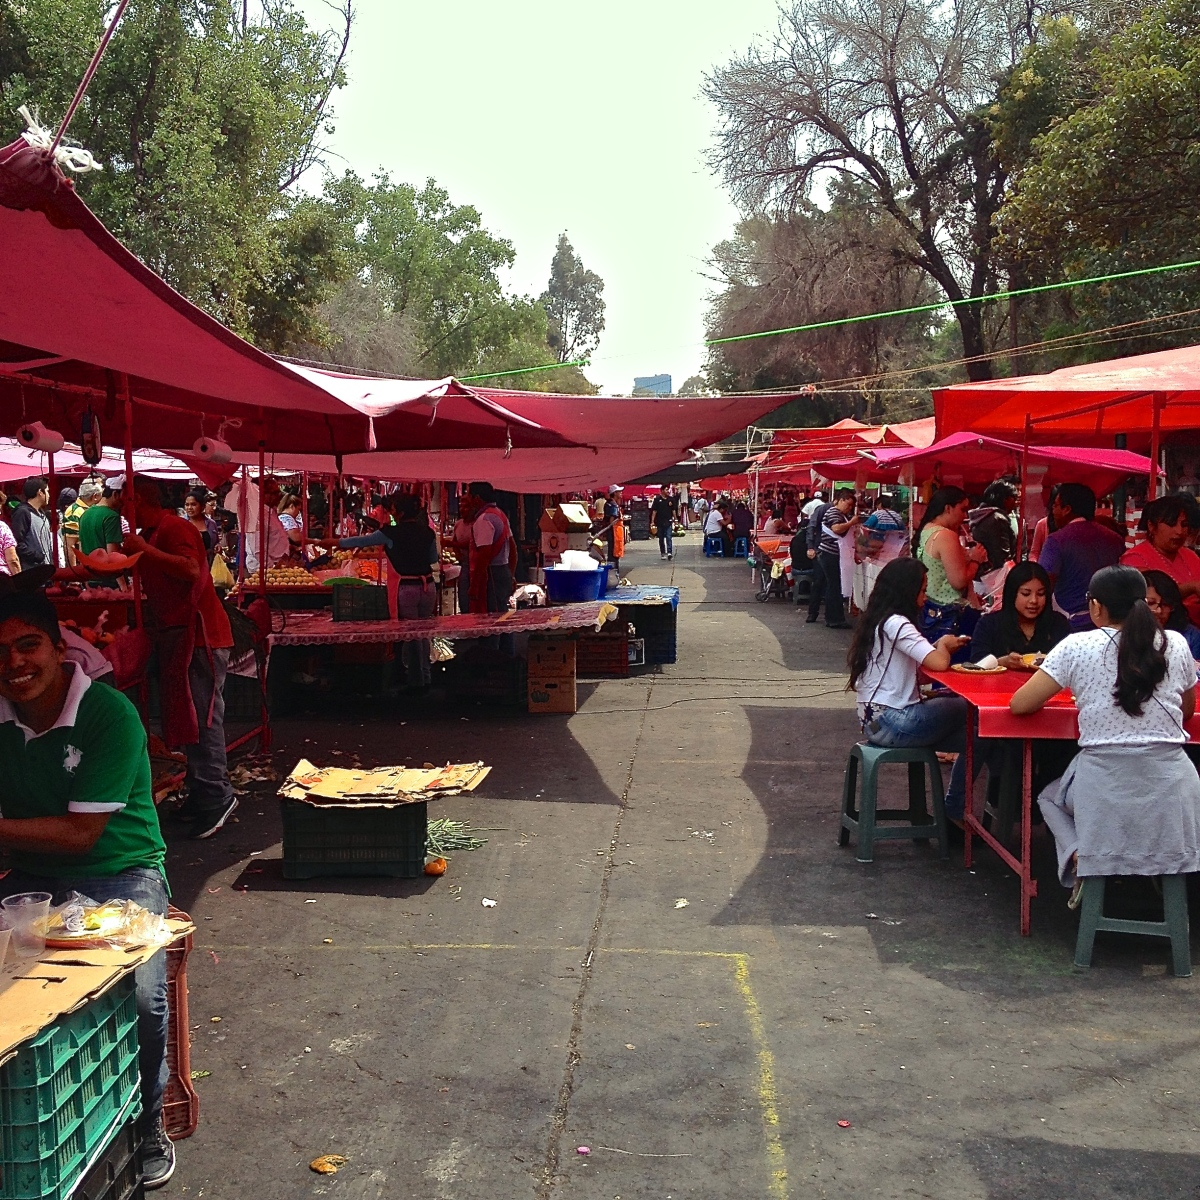 Food, fear and the price of limes in Mexico